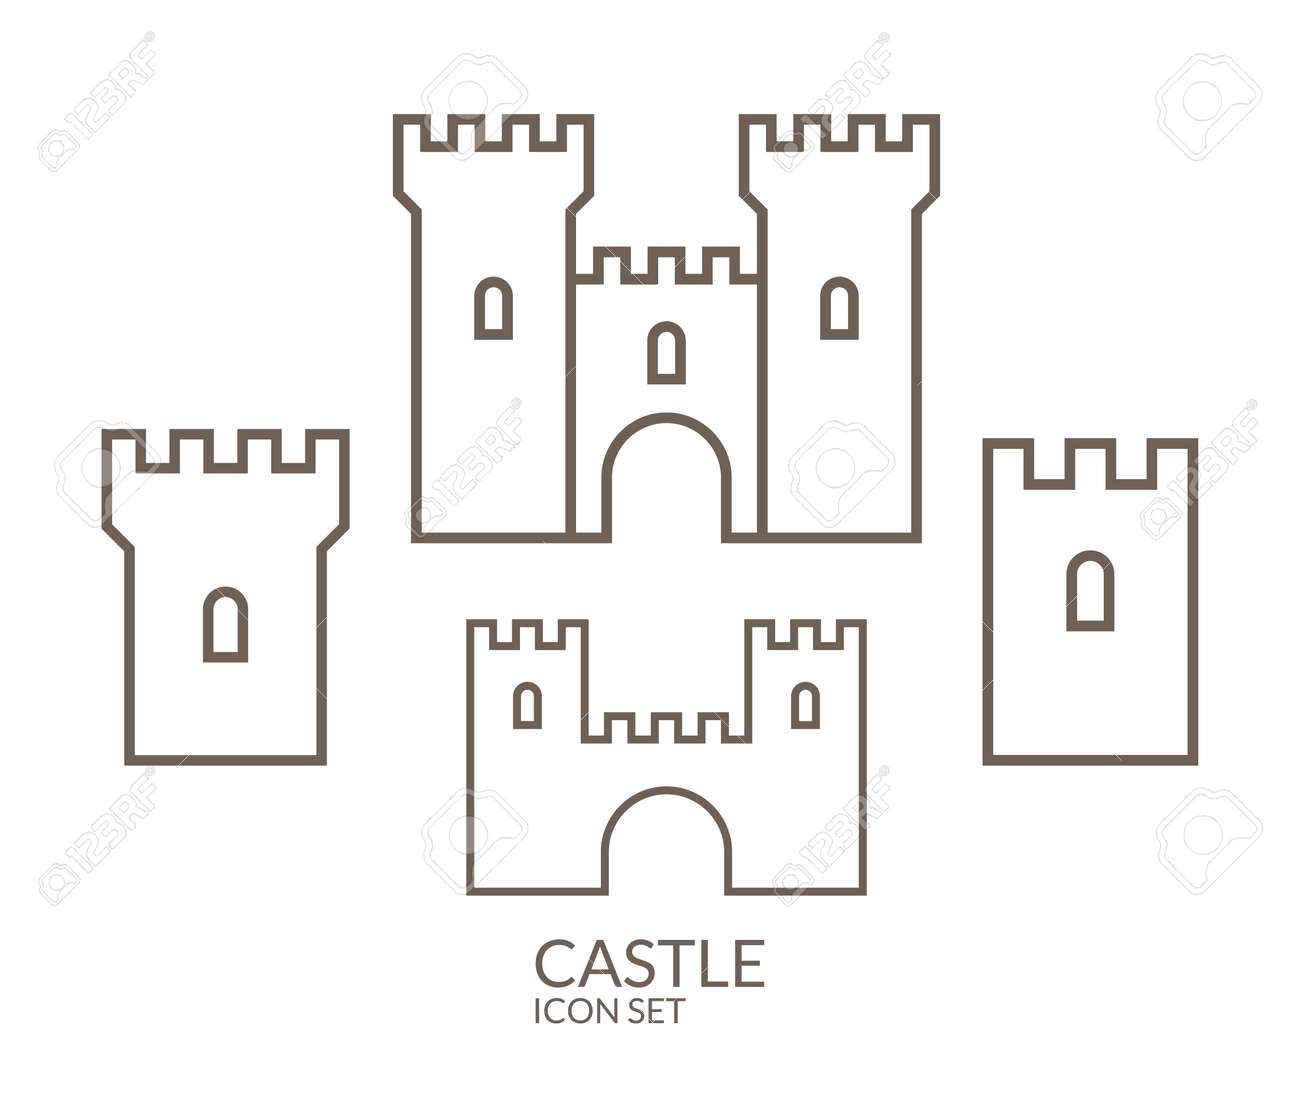 Castle Icon Set Outline Royalty Free Cliparts Vectors And Stock